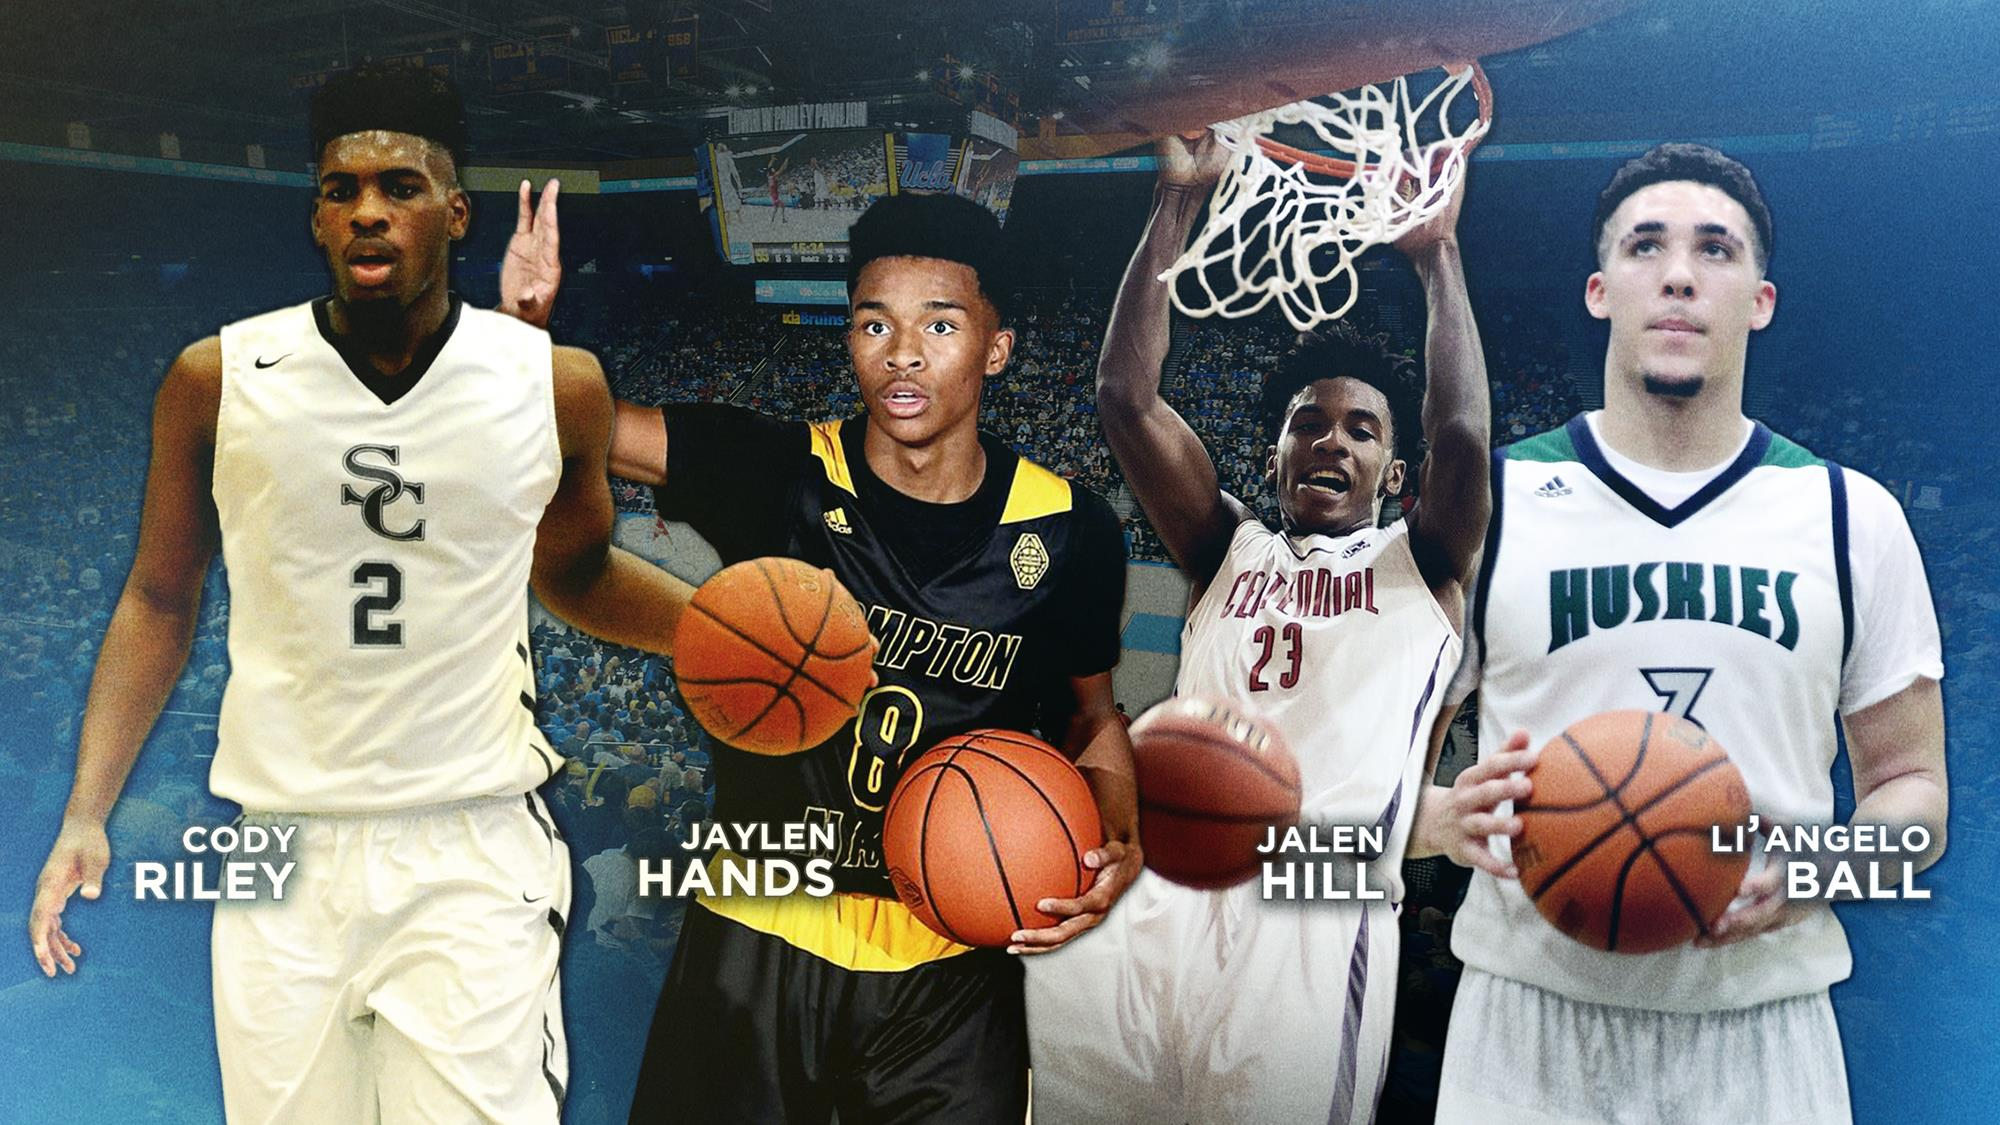 ucla basketball signs four socal standouts